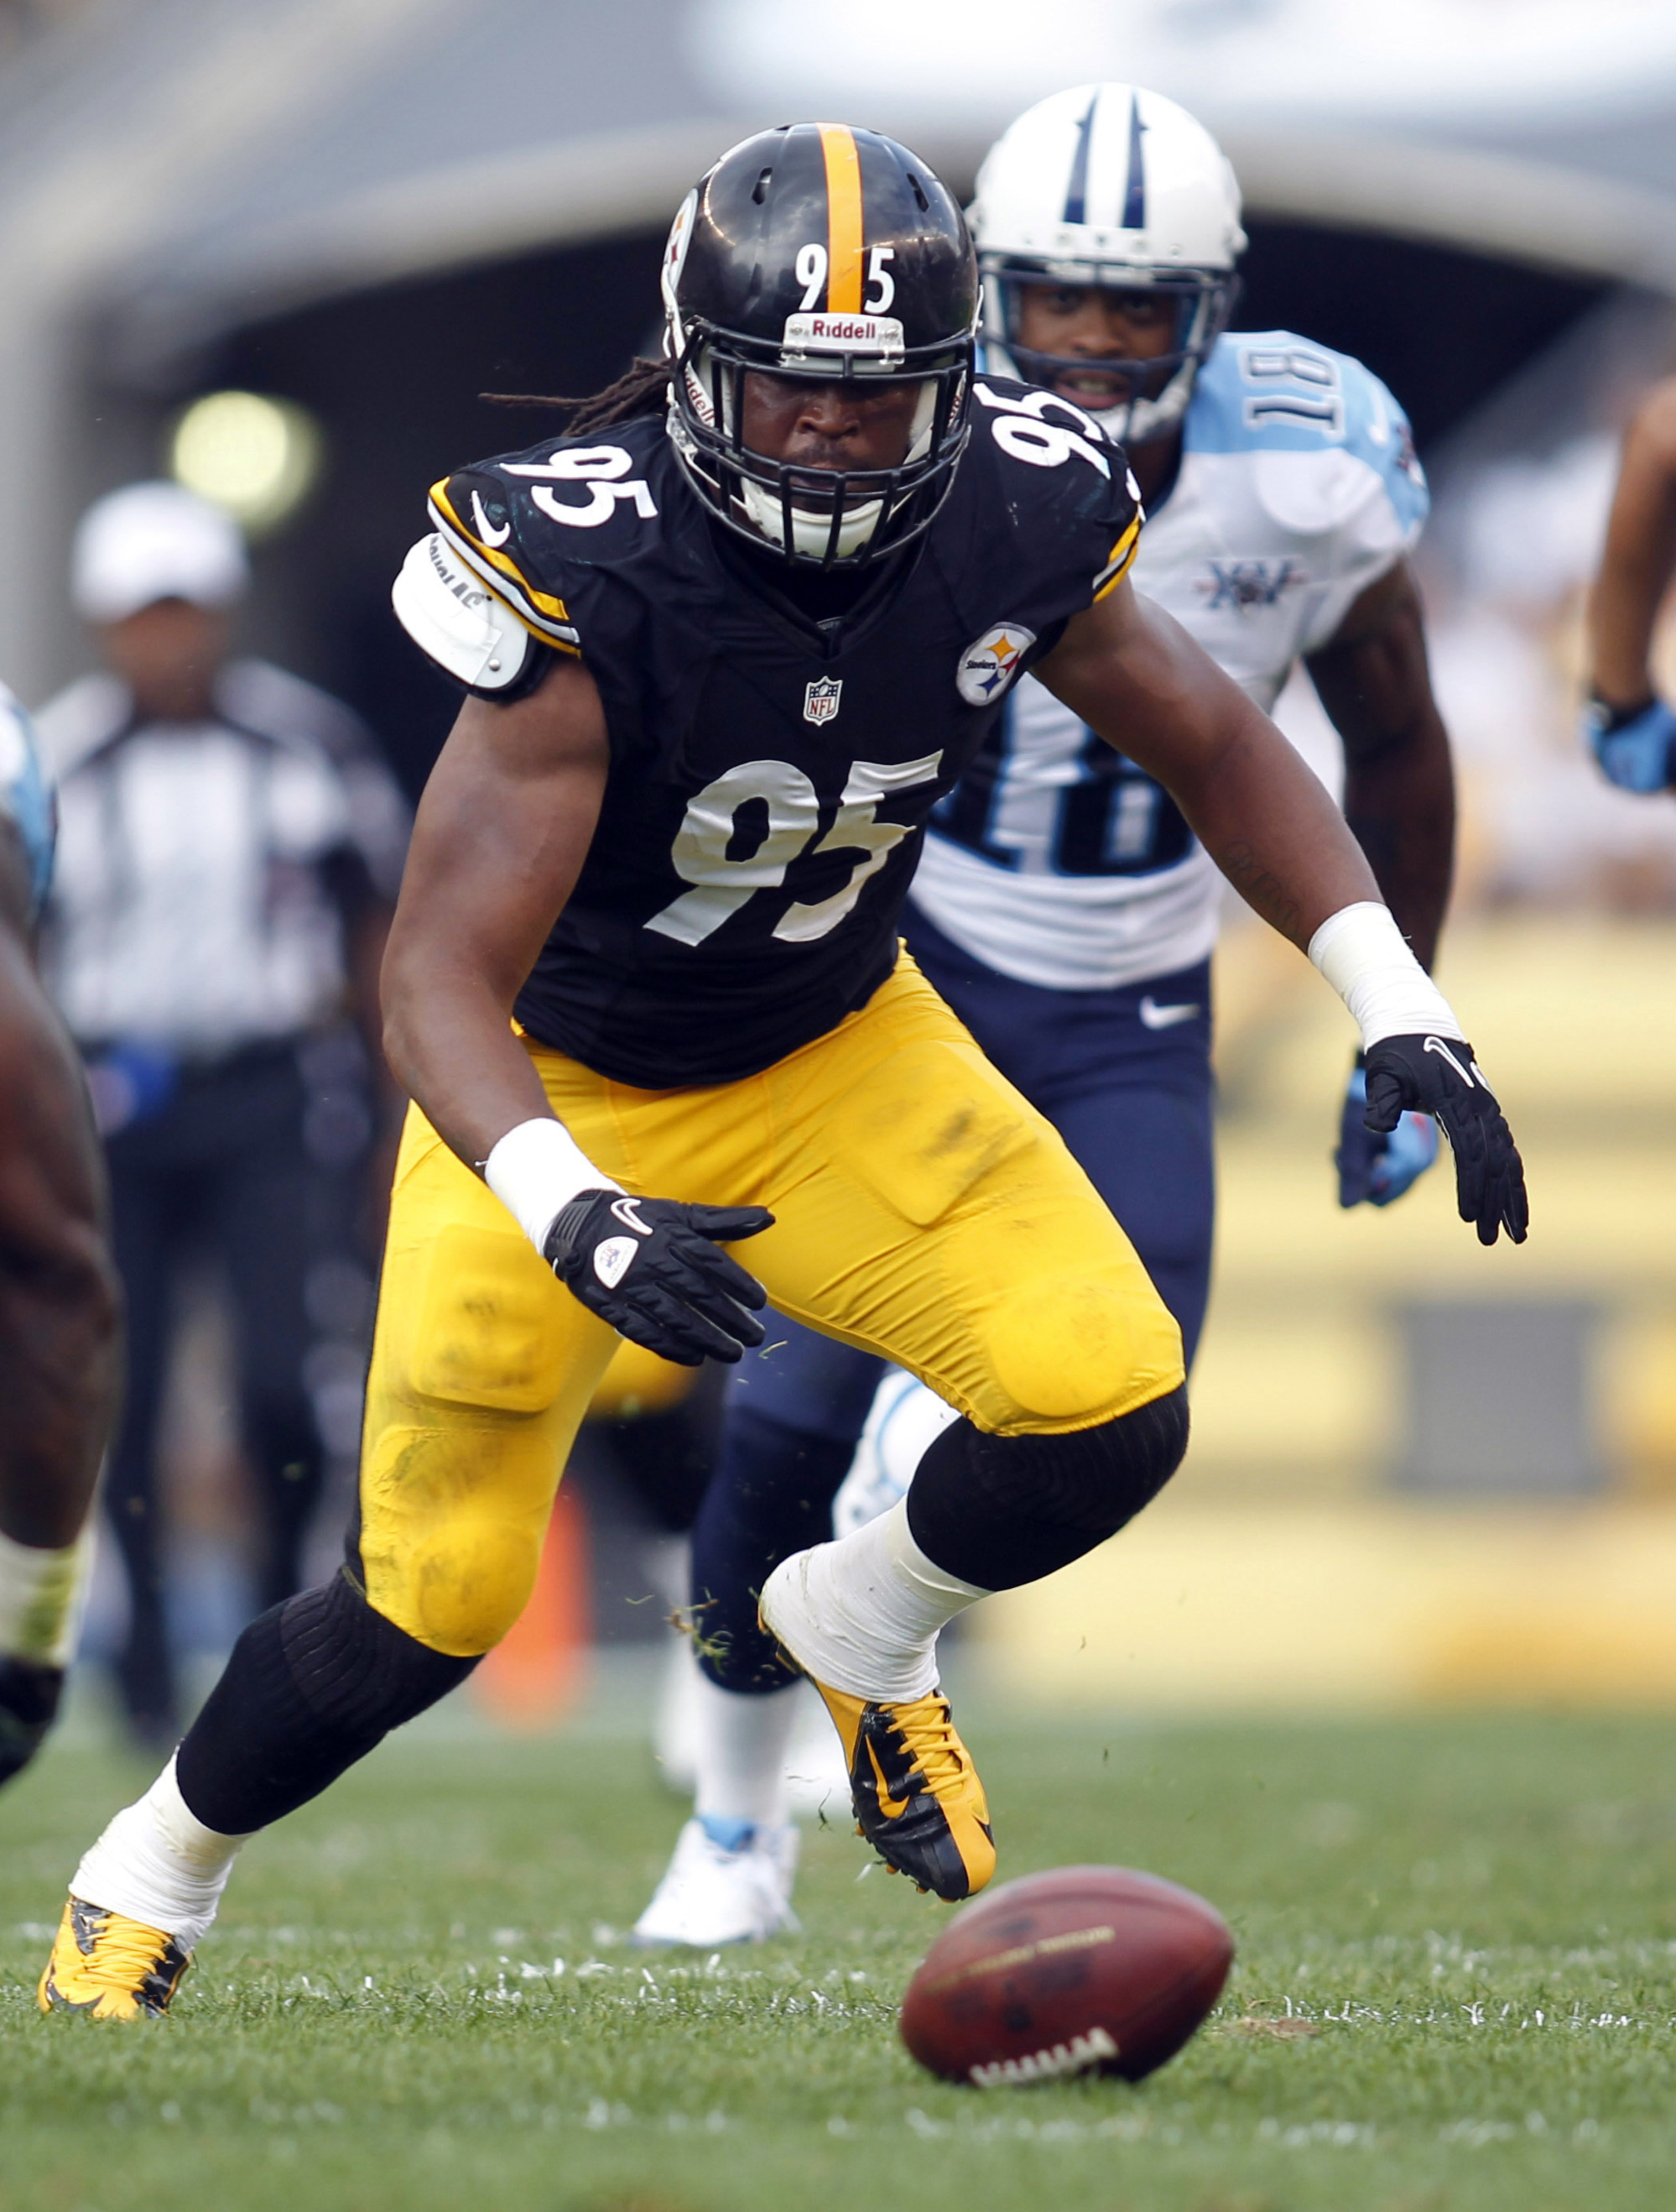 Will the Steelers Need Jarvis Jones to unlock some of the power hidden in no. 95?